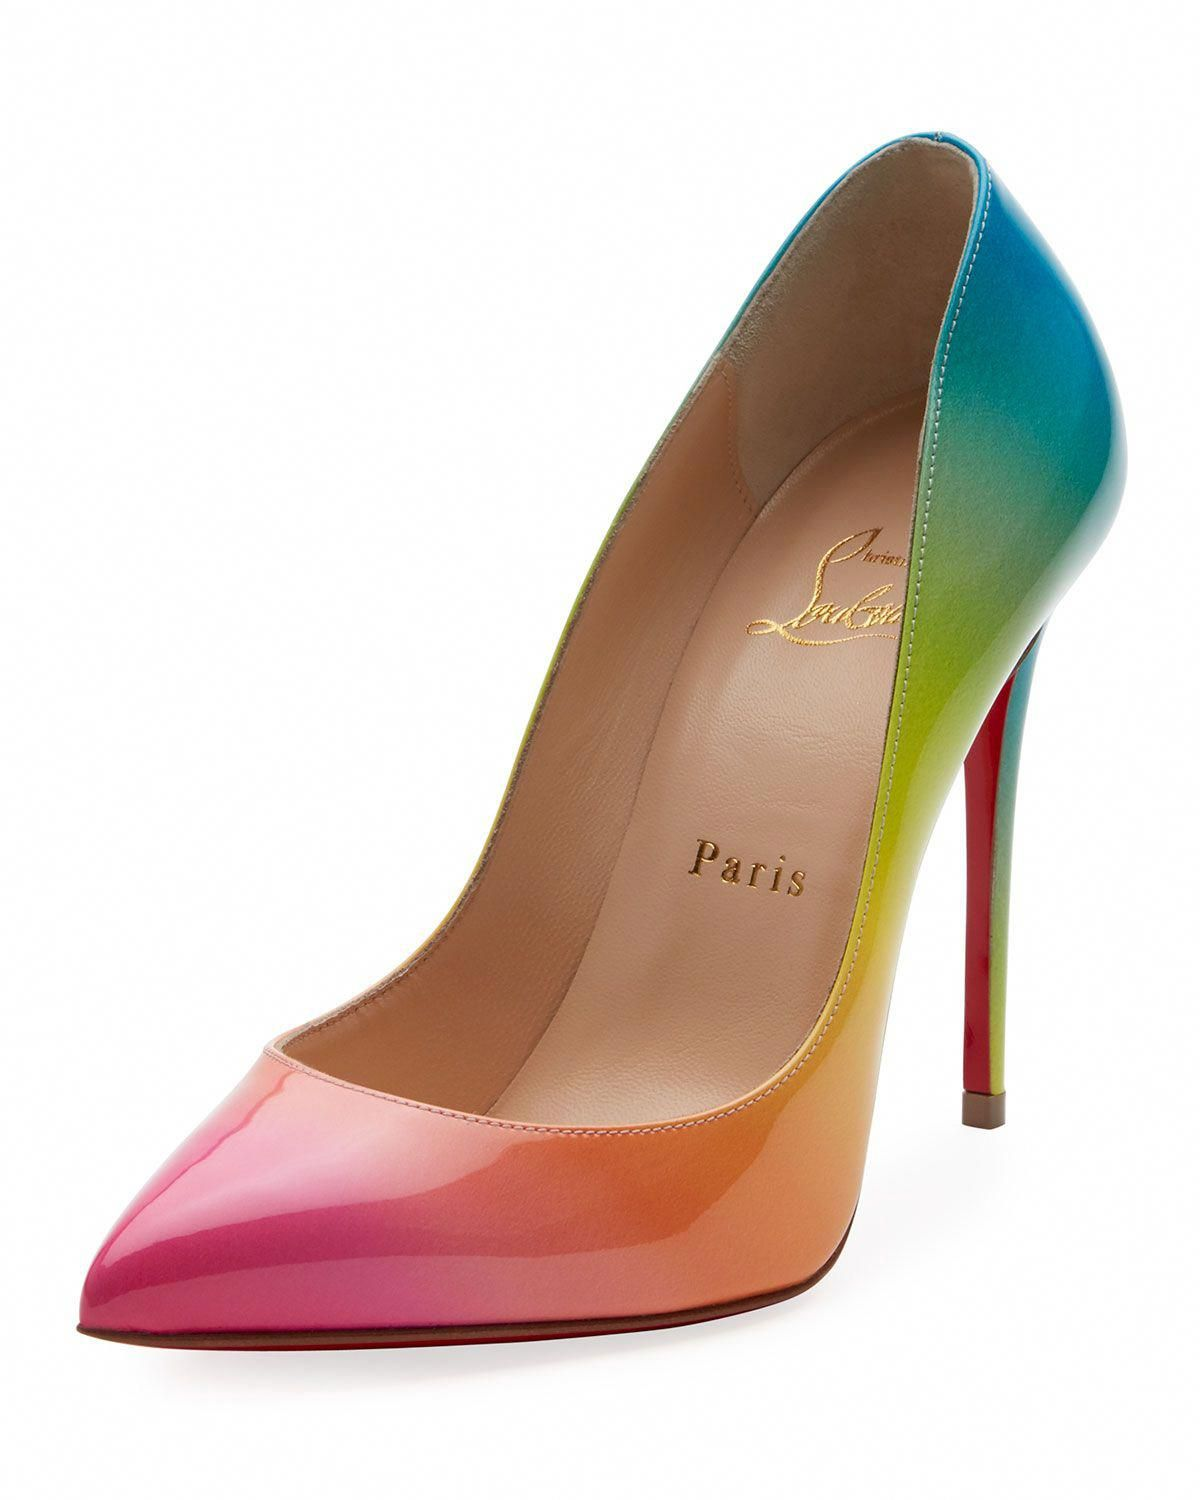 e0cc69100bd Christian Louboutin Pigalle Follies 100mm Ombre Patent Red Sole ...